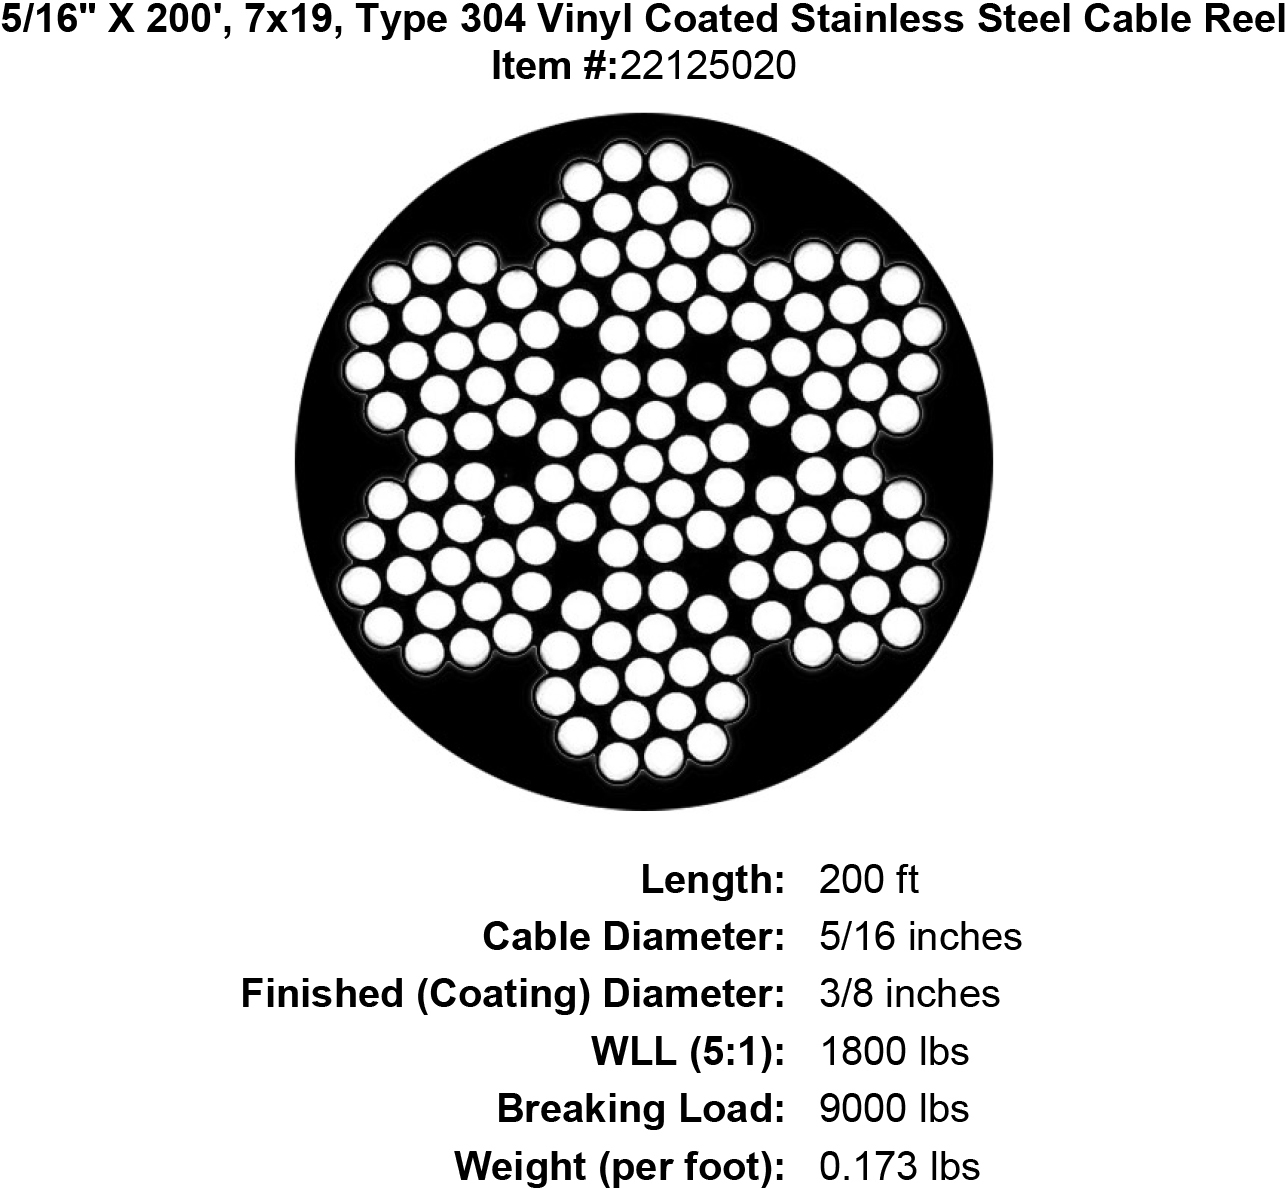 Stainless Wire Rope Weight Per Foot - WIRE Center •